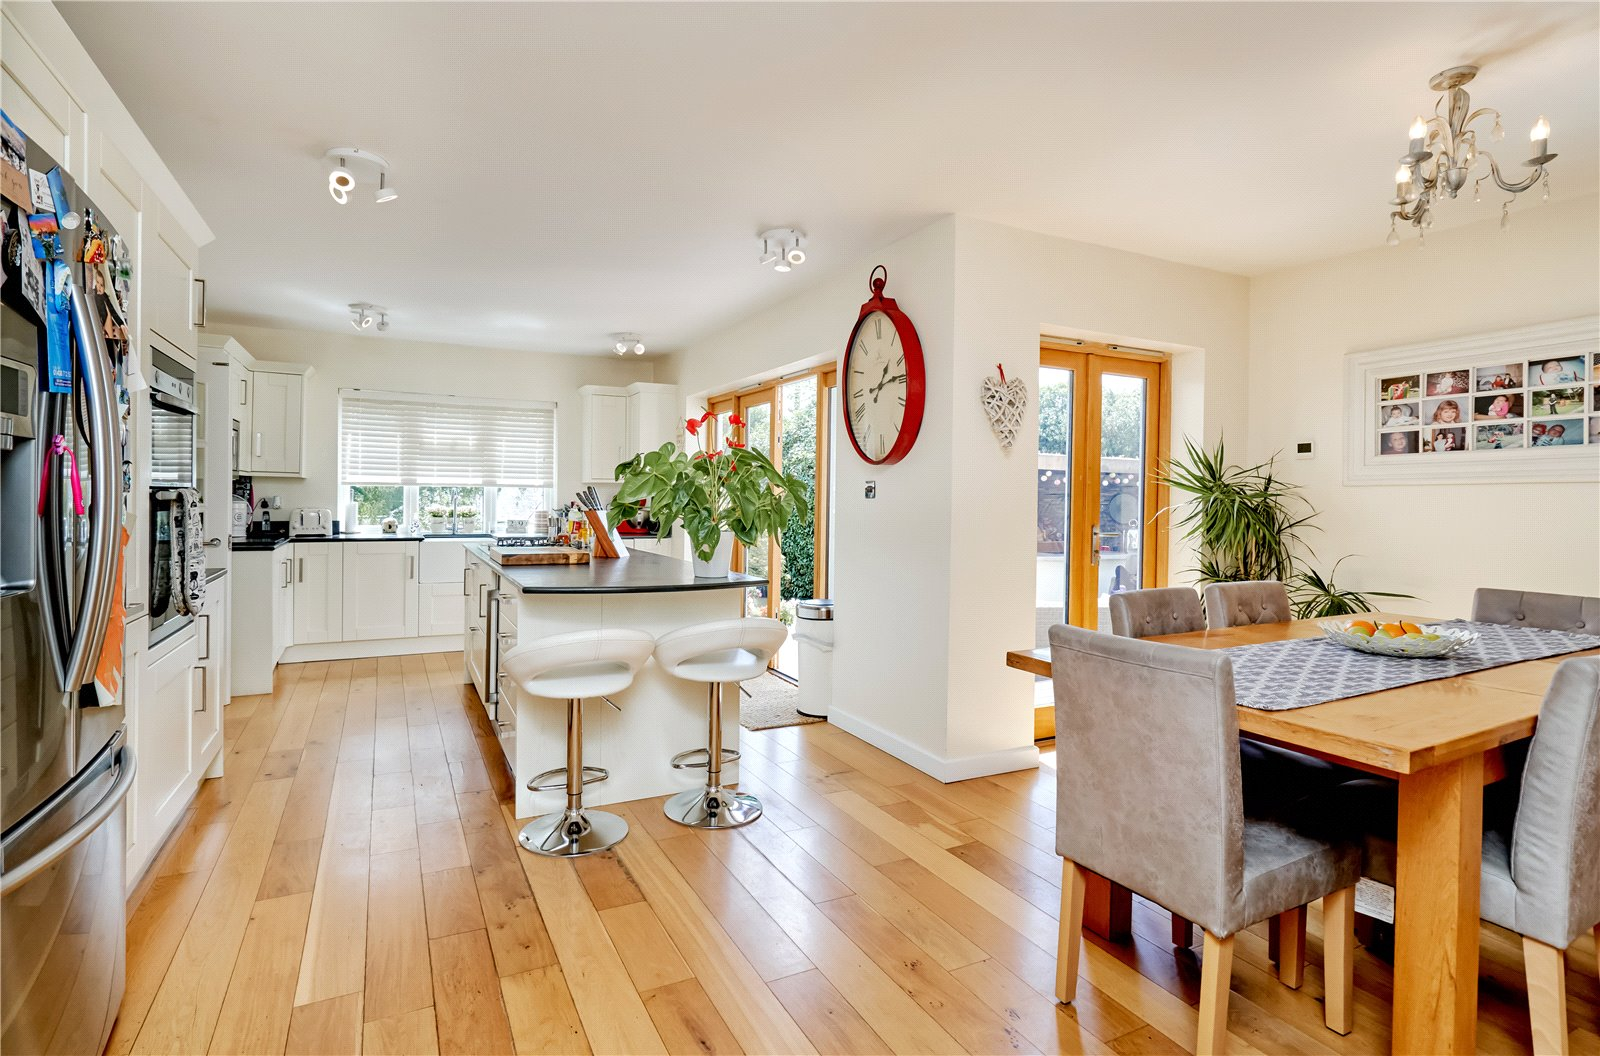 4 bed house for sale in Welwyn, AL6 0QG 2